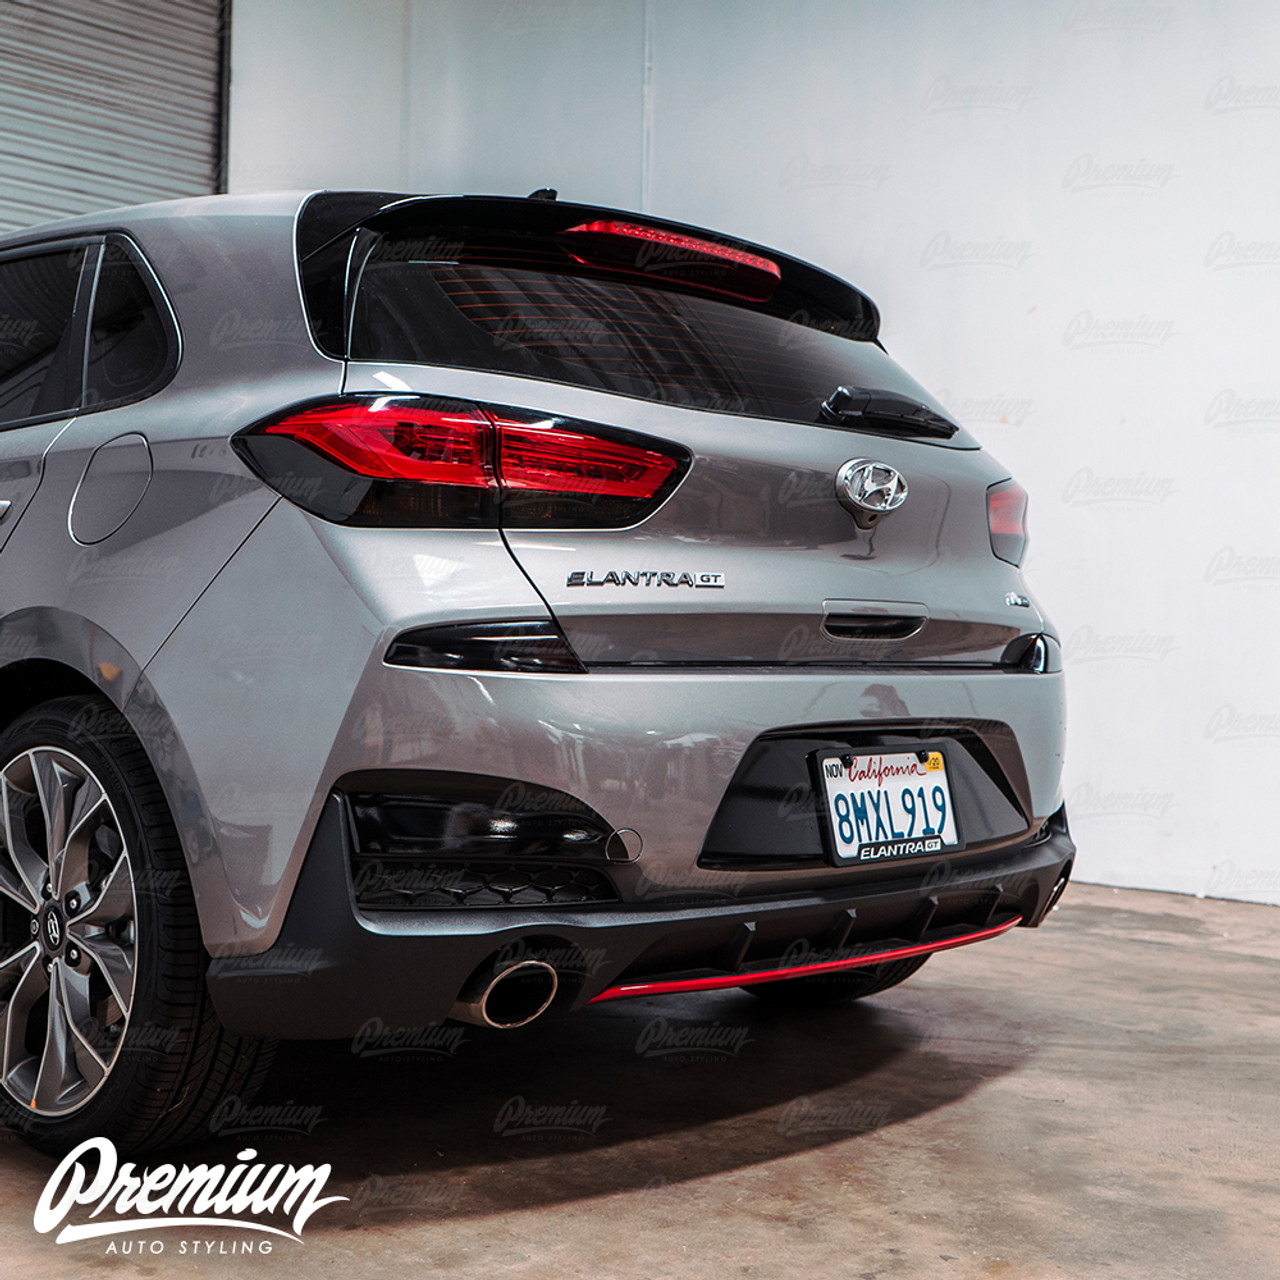 pre cut smoked tail light tint 2020 hyundai elantra gt n line hatchback tail light smoke tint overlay 2020 hyundai elantra gt n line hatchback